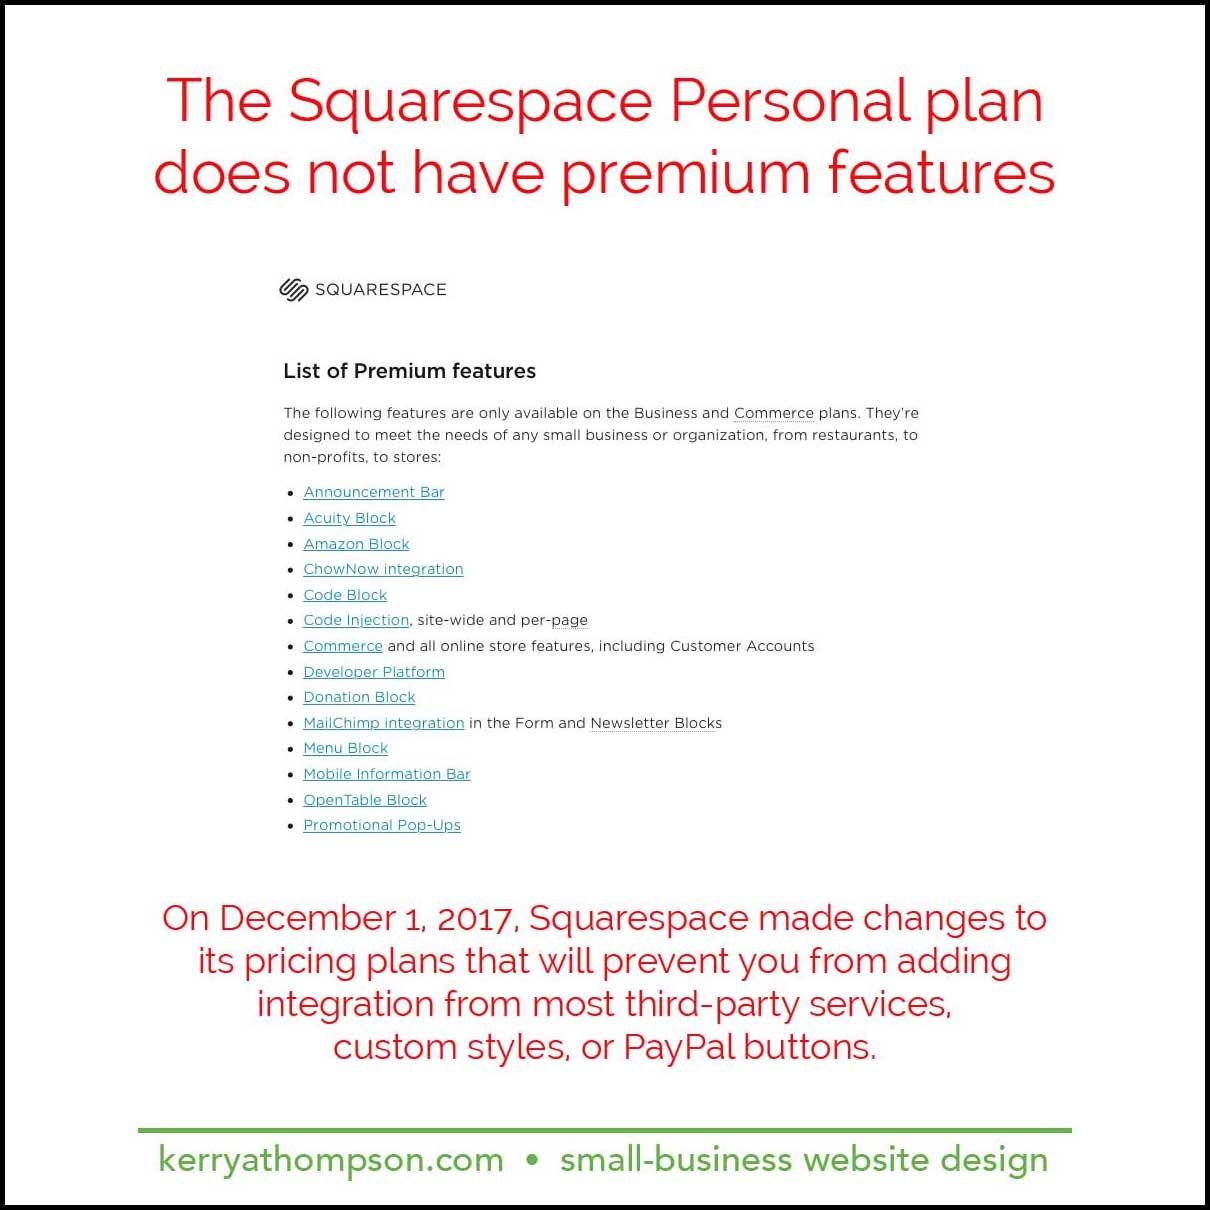 Important Squarespace features for small businesses are